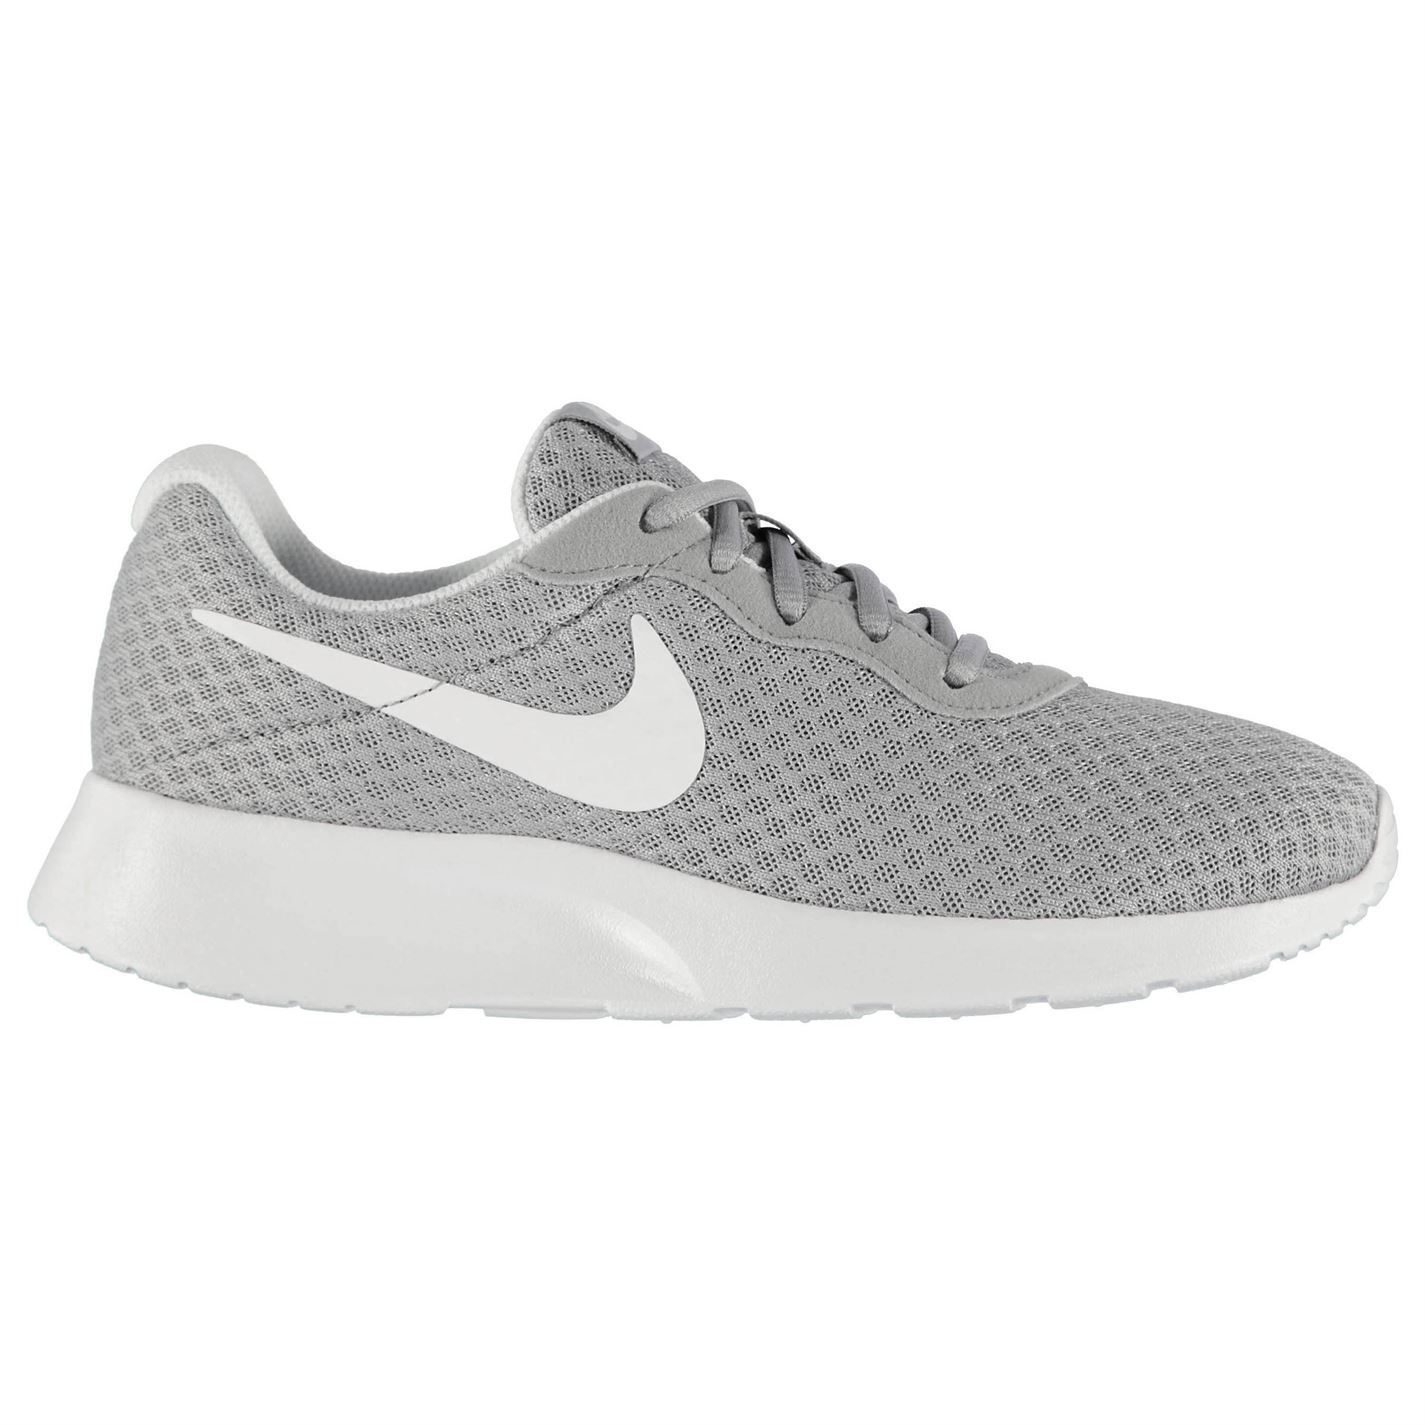 Details about Nike Tanjun Training Shoes Womens Grey White Gym Fitness  Trainers Sneakers a3add839c95